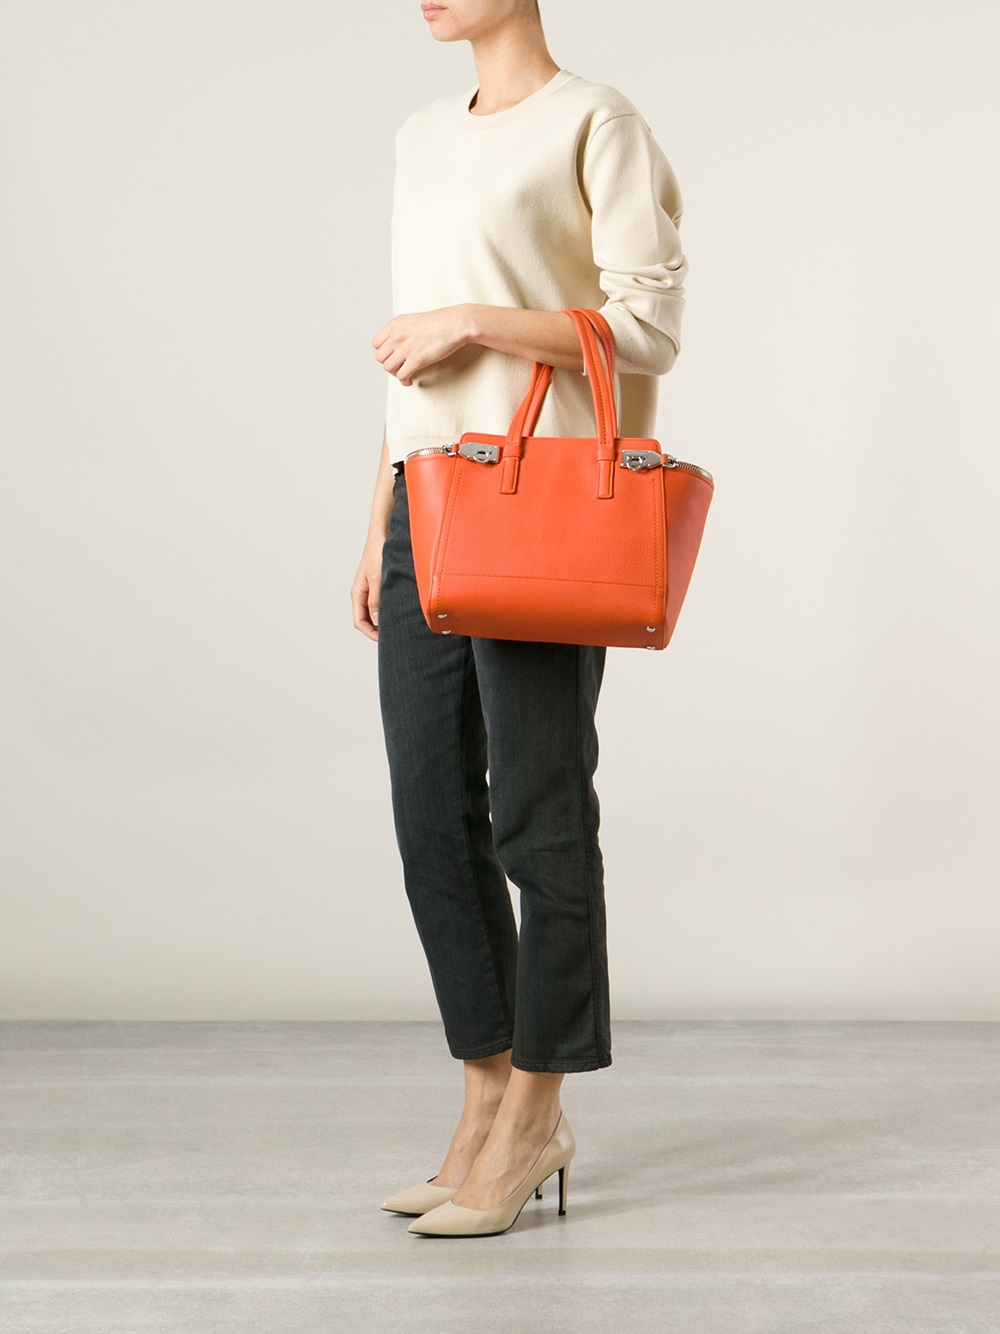 Lyst - Ferragamo Verve Tote in Orange dec3d83b13e0a